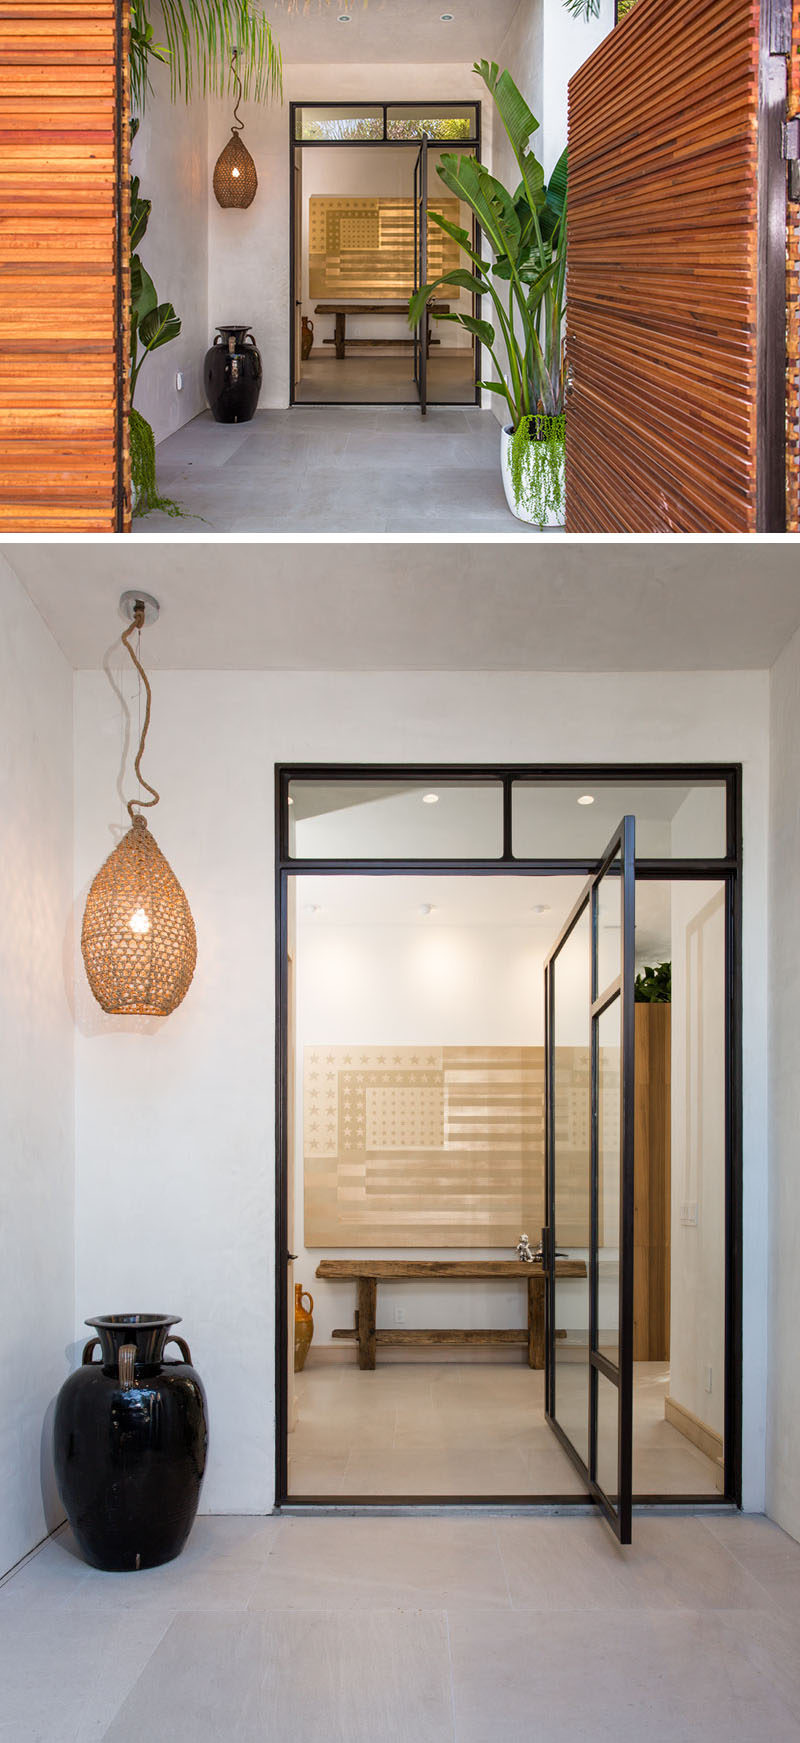 At the entrance to this Californian home, there's a glass pivoting door with black frame.